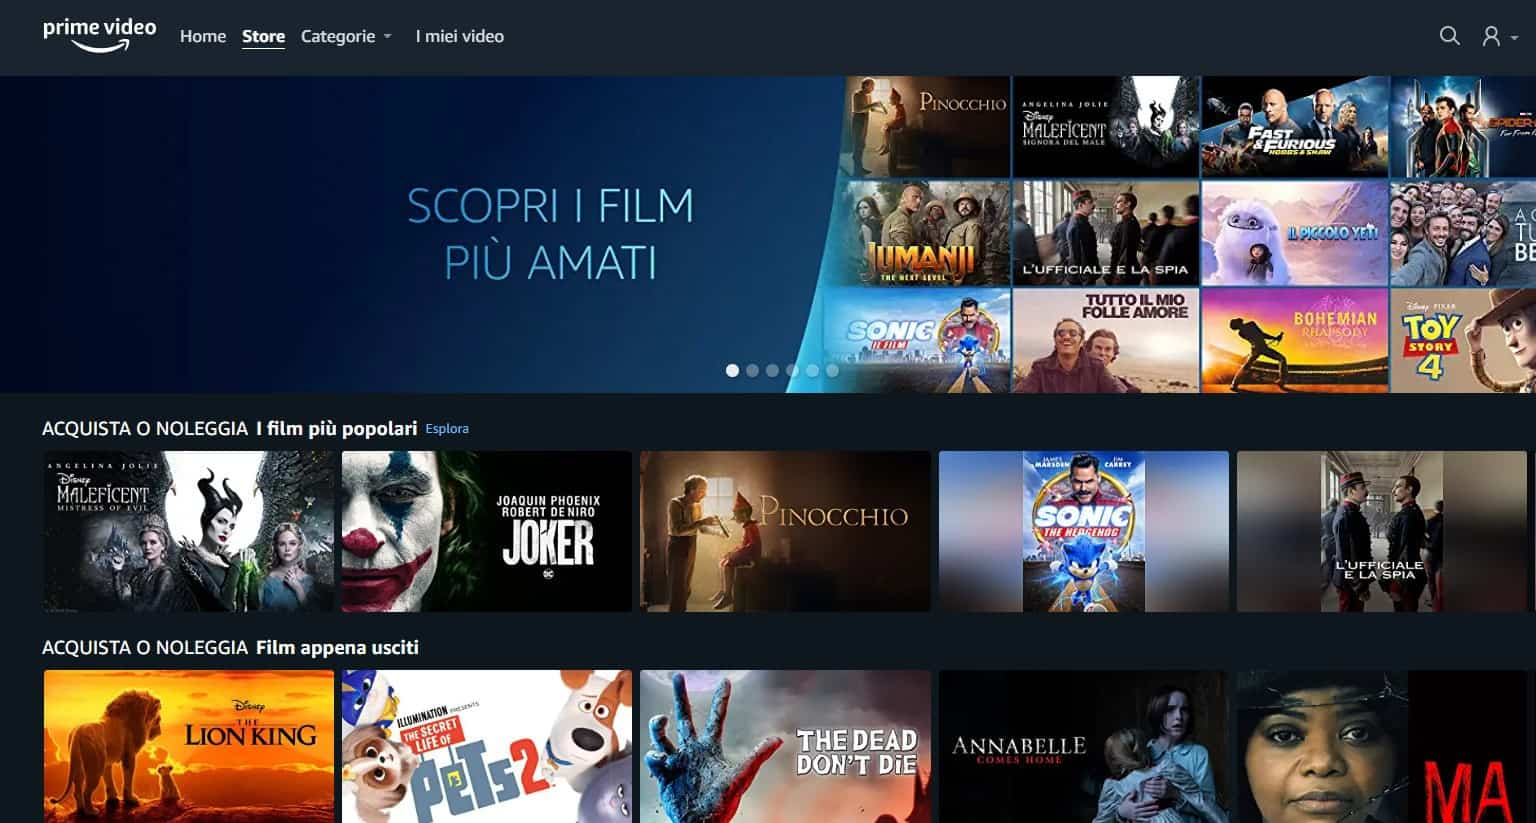 Amazon Prime Video annuncia arrivo del Prime Video Store in Italia